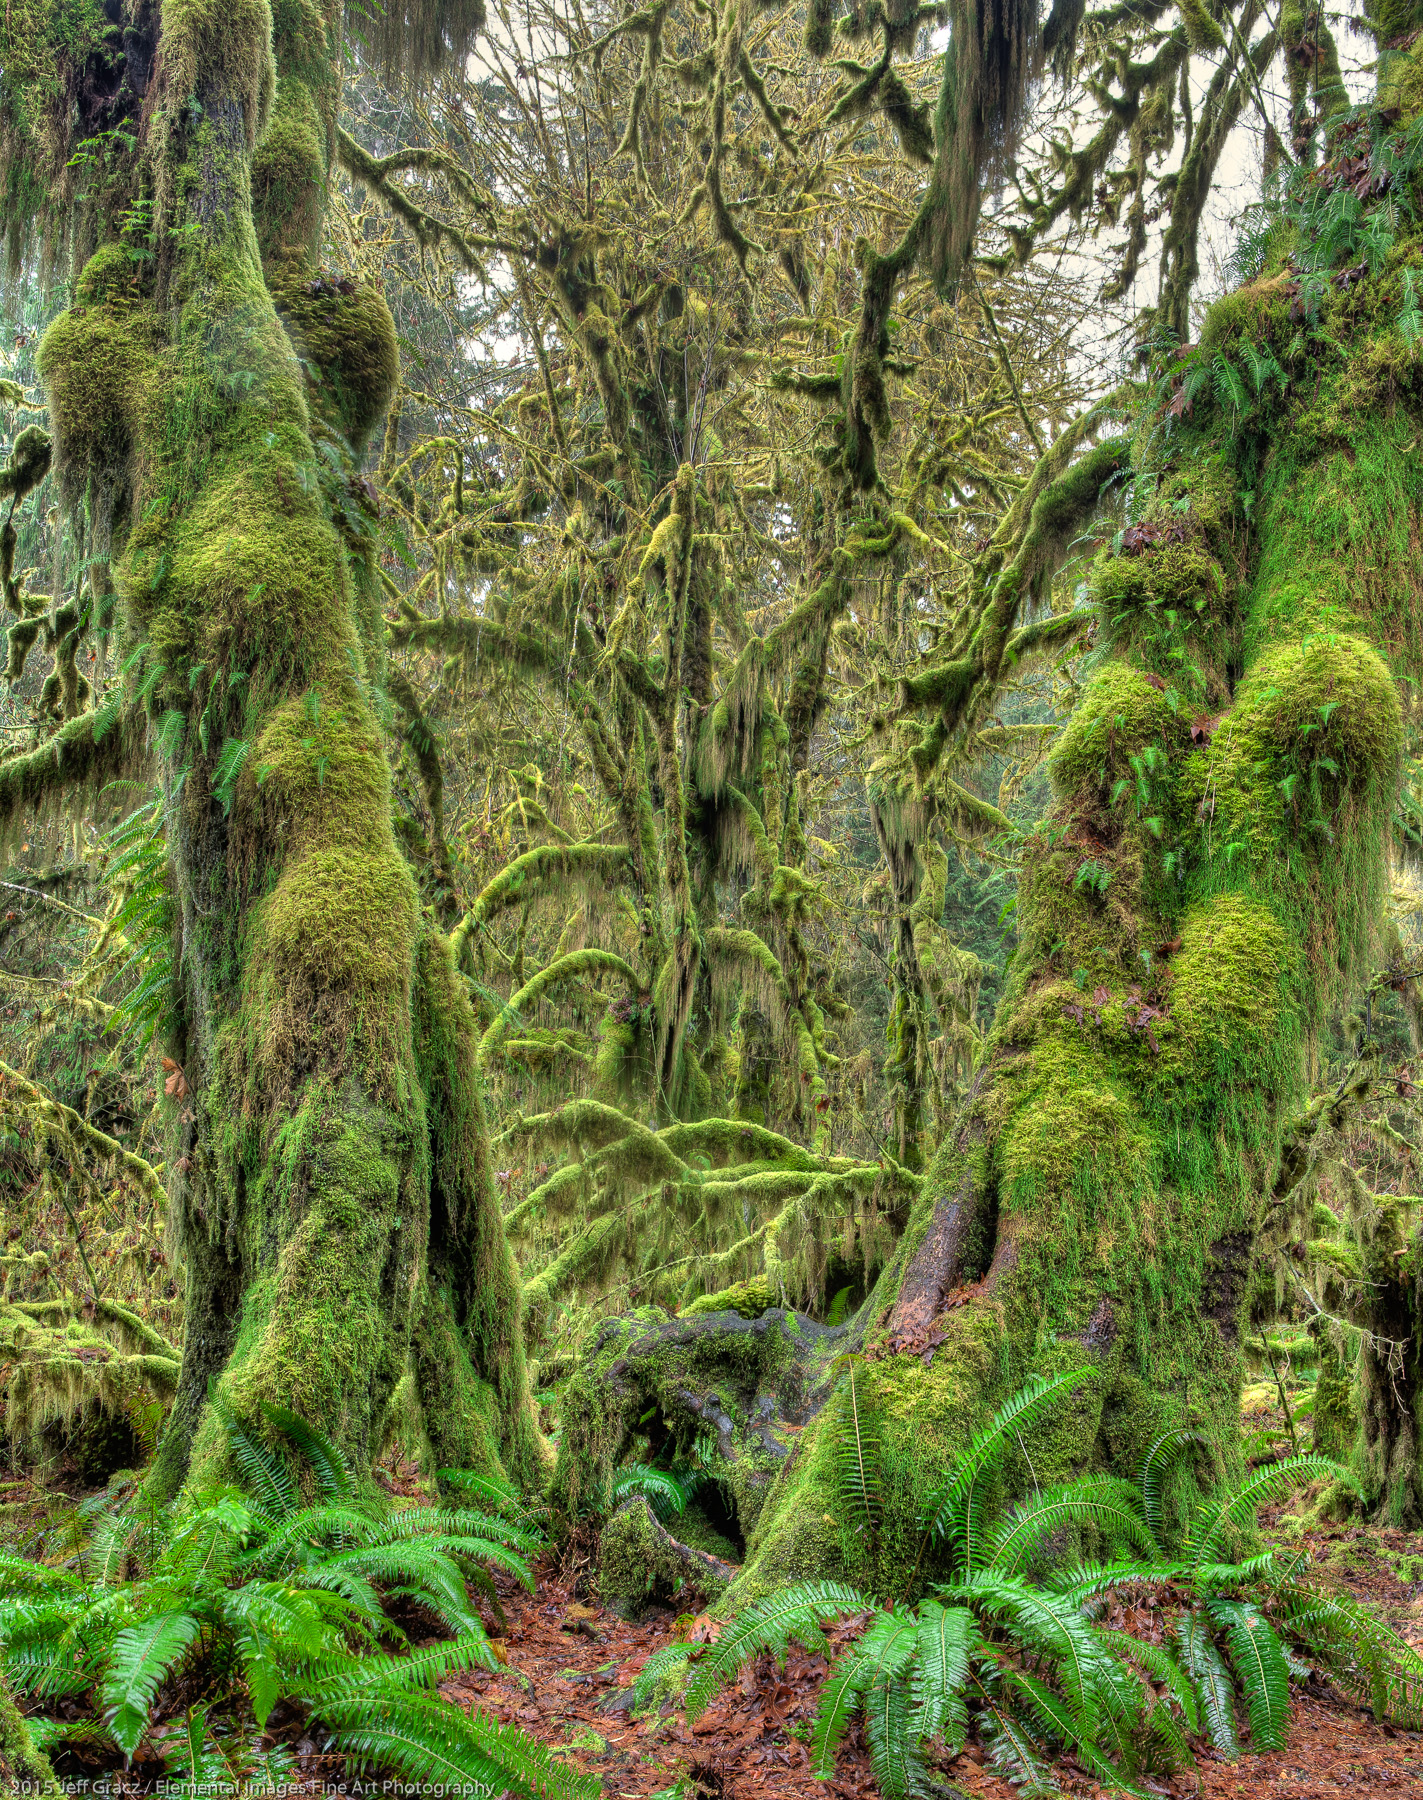 Elders of the Green | Olympic National Park | WA | USA - © 2015 Jeff Gracz / Elemental Images Fine Art Photography - All Rights Reserved Worldwide